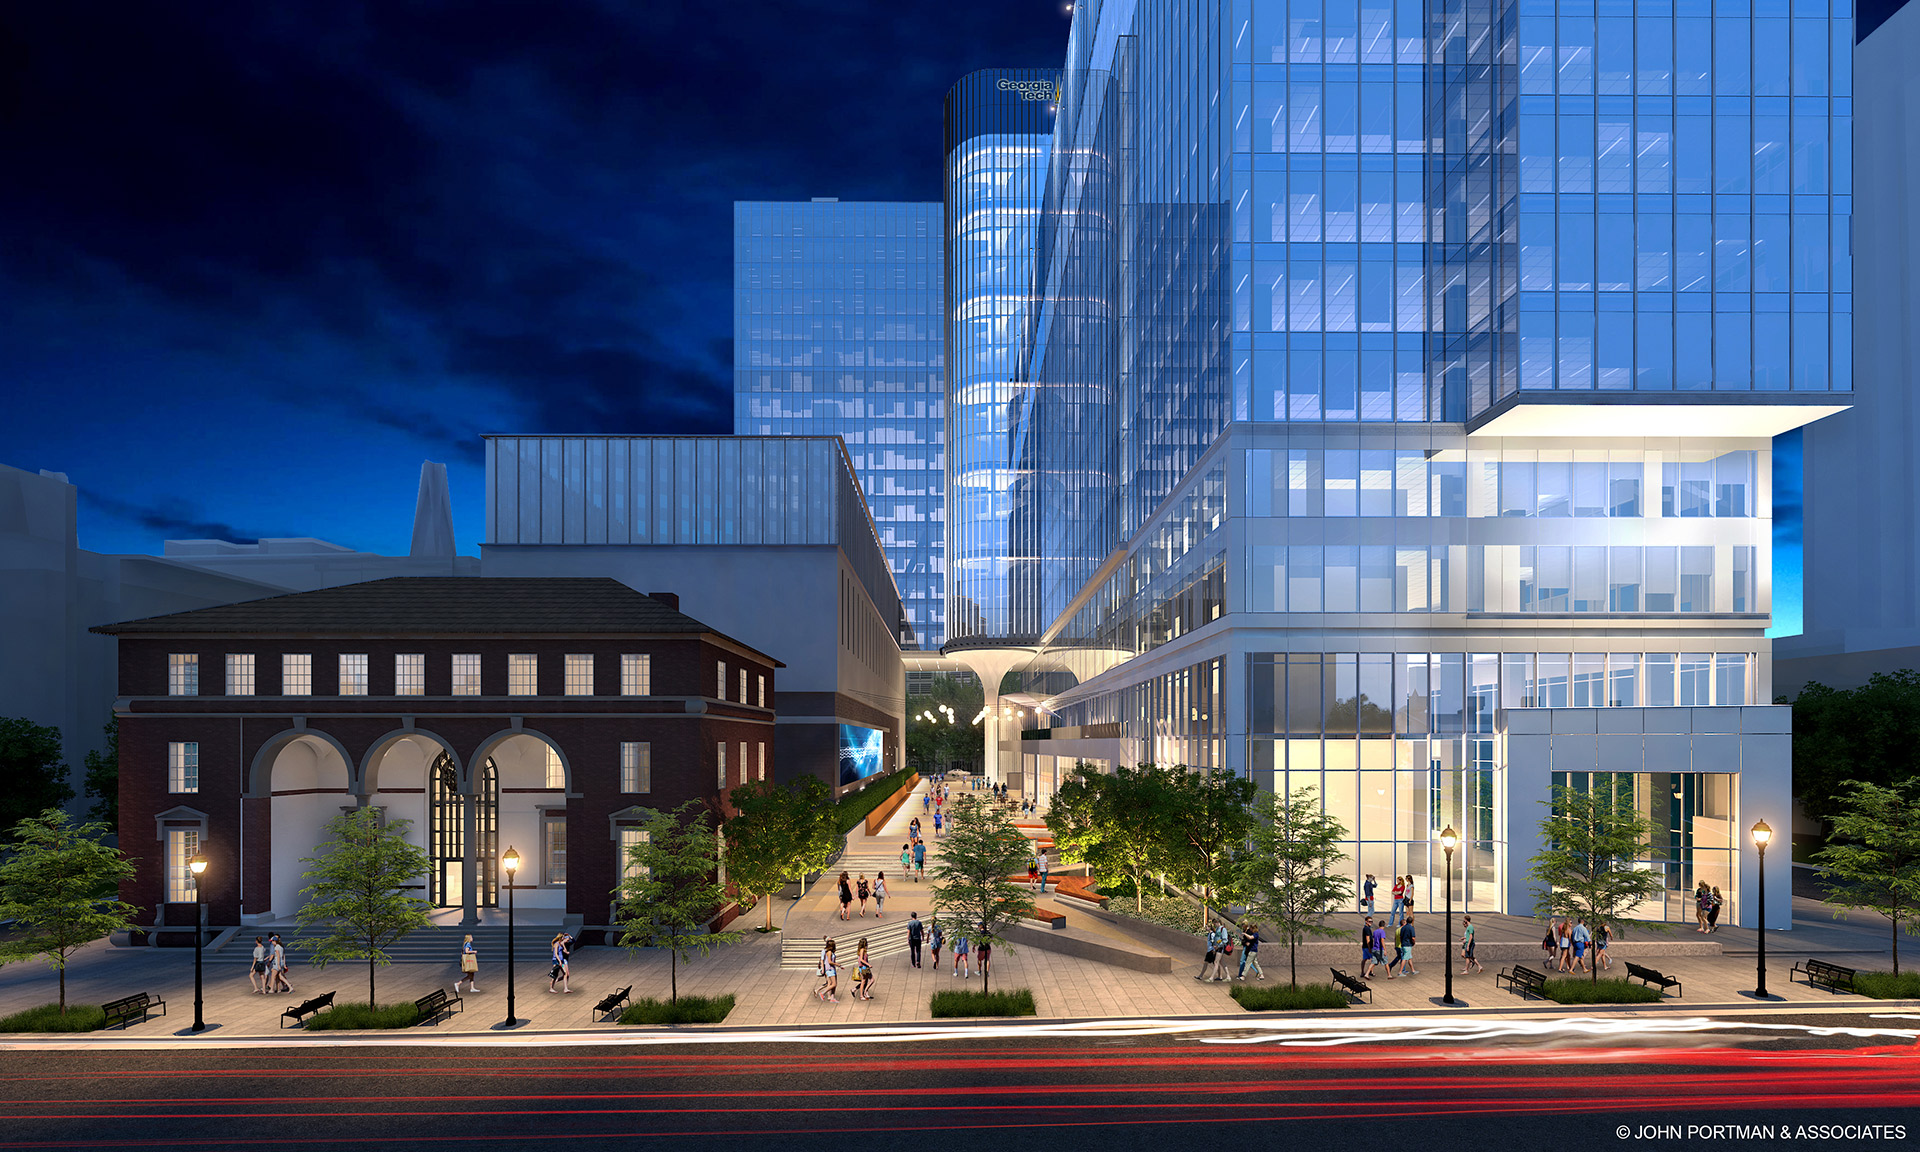 A rendering of the forthcoming Coda mixed-use development.